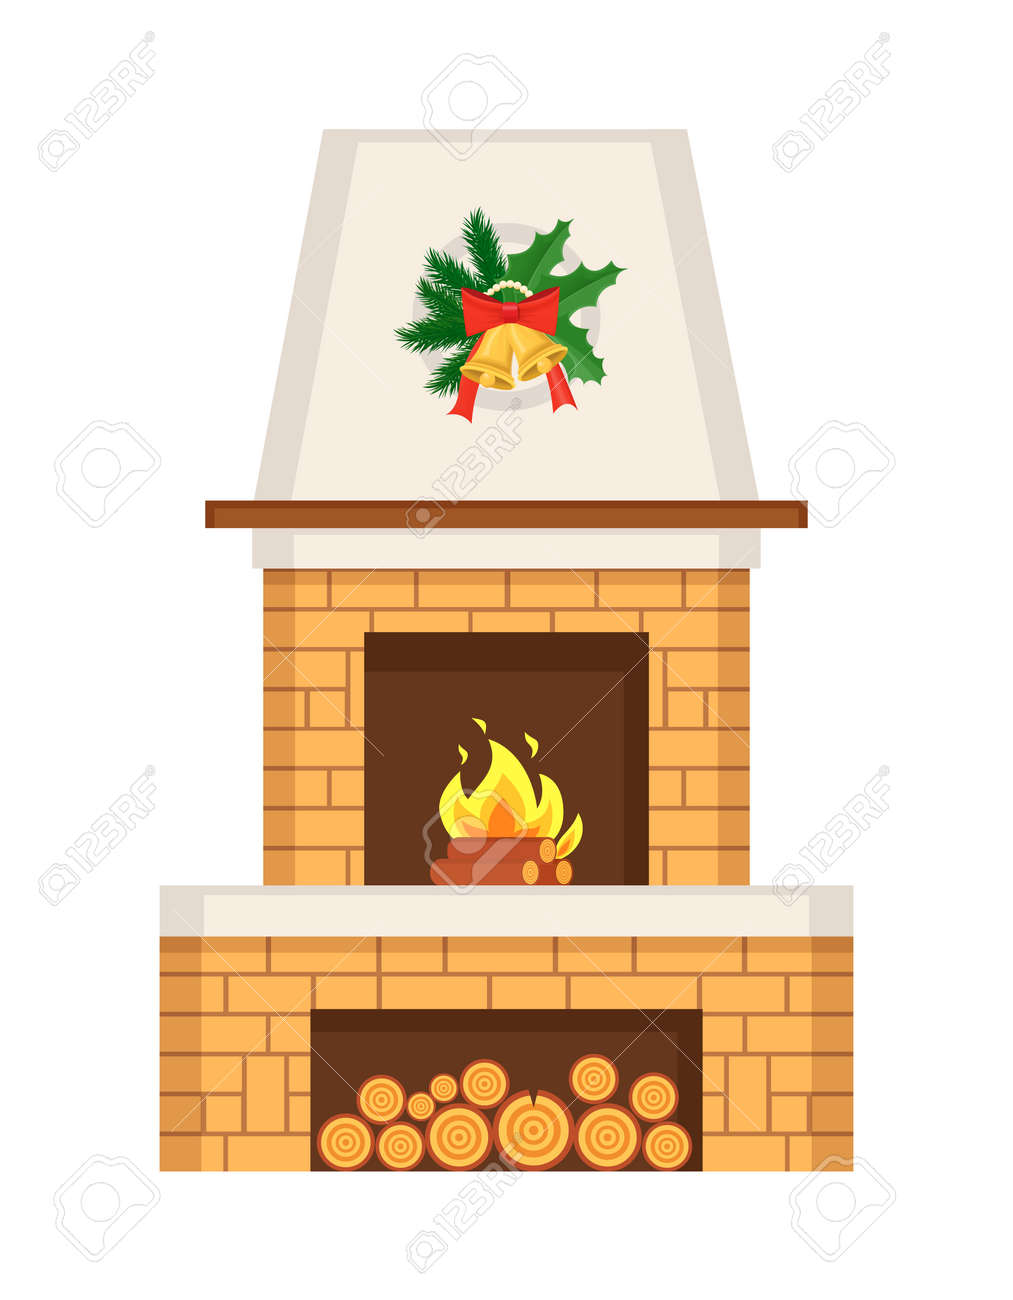 Fireplace home interior decorated for Christmas vector. Winter holiday decoration, mistletoe leaves and bell with bow ribbons. Furniture with logs - 159903019